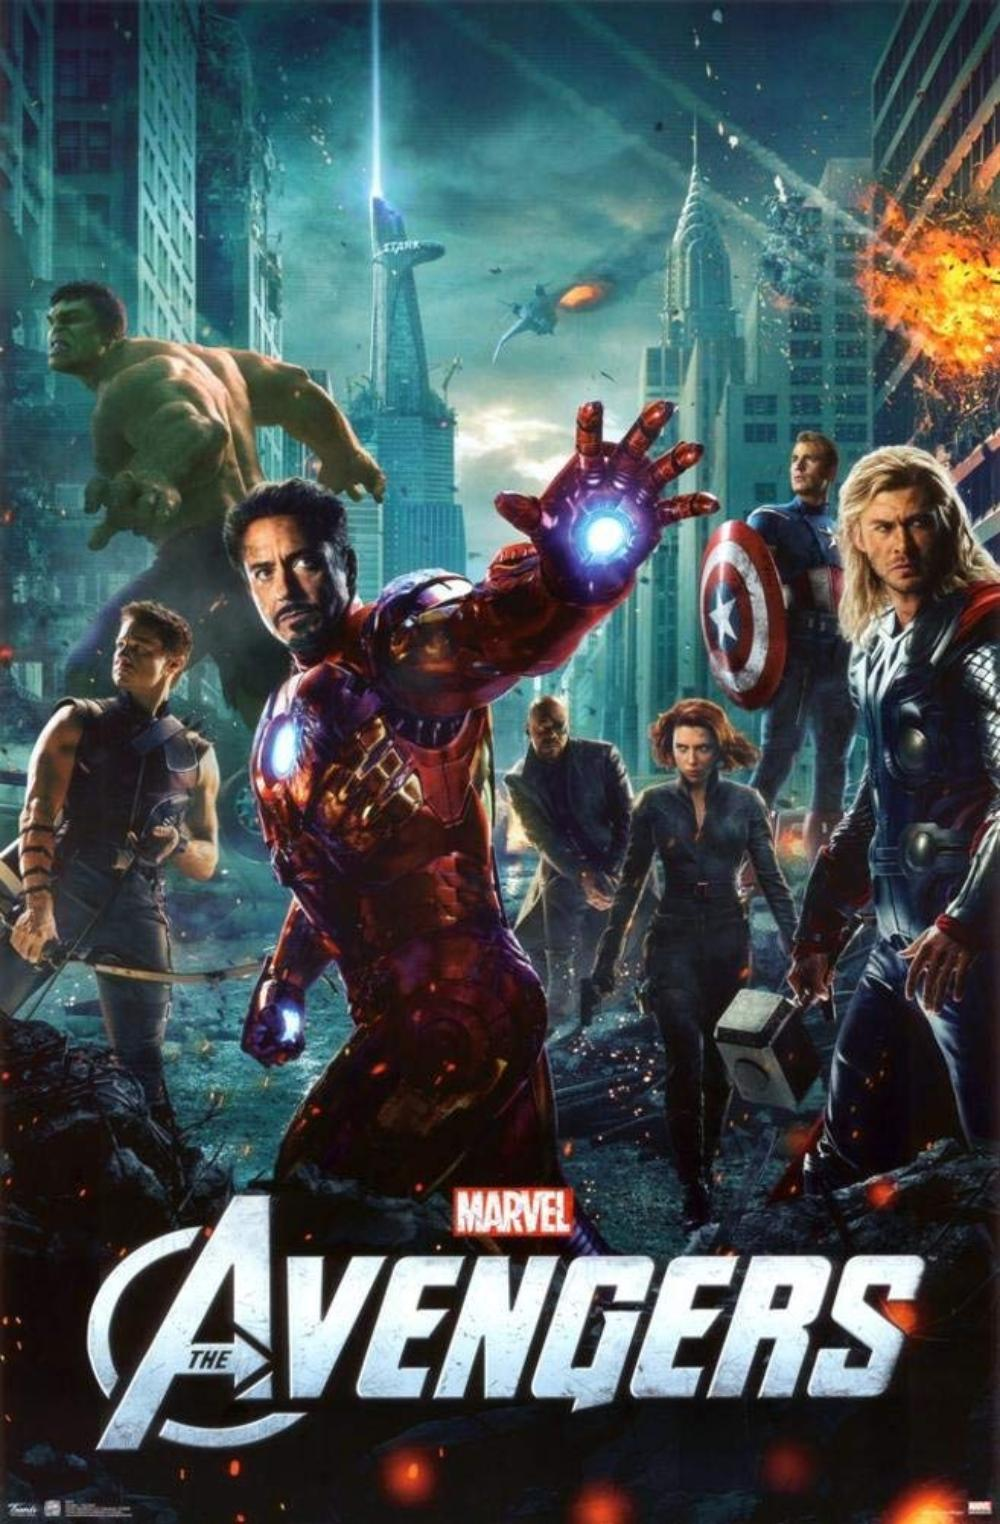 Avengers Age Of Ultron Avengers Poster 22 x 34in